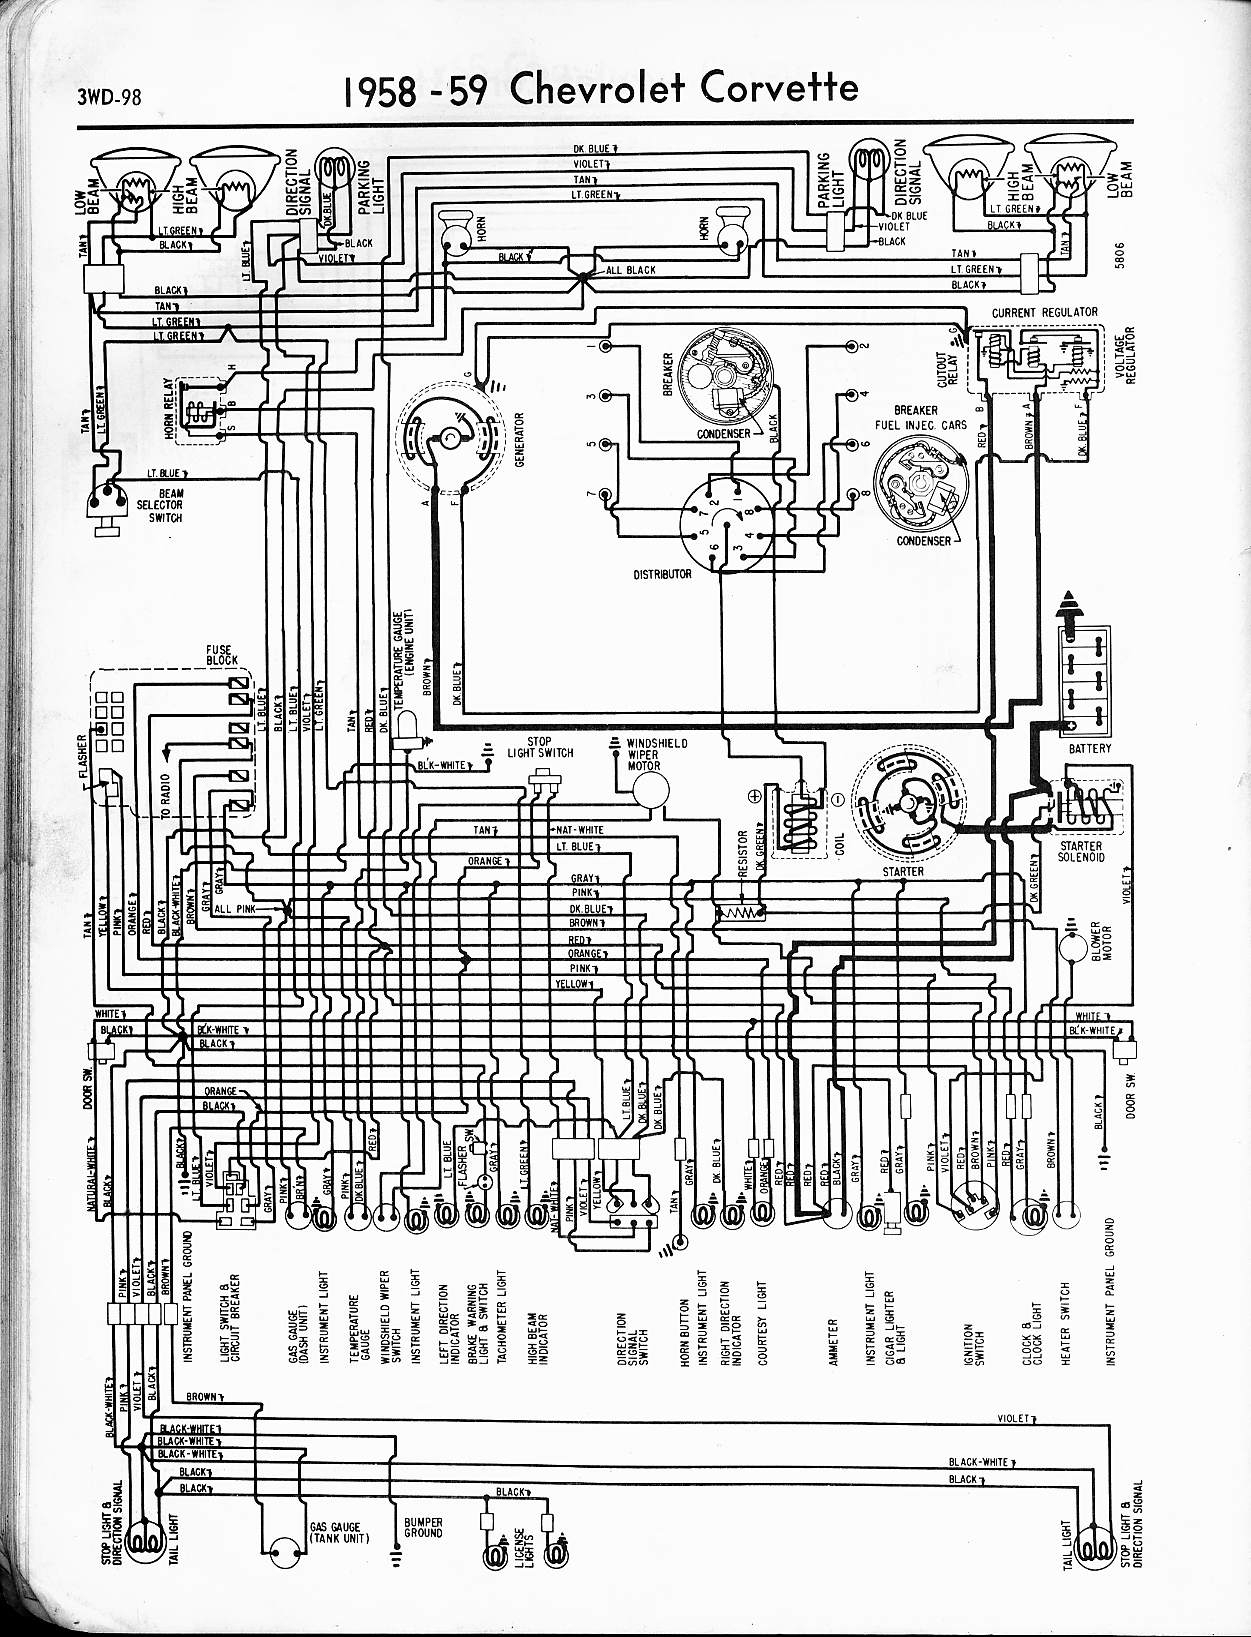 1965 Corvette Wiring Diagram - 1989 Ezgo Wiring Diagram -  fuses-boxs.yenpancane.jeanjaures37.fr | 1965 Corvette Wiring Diagram |  | Wiring Diagram Resource